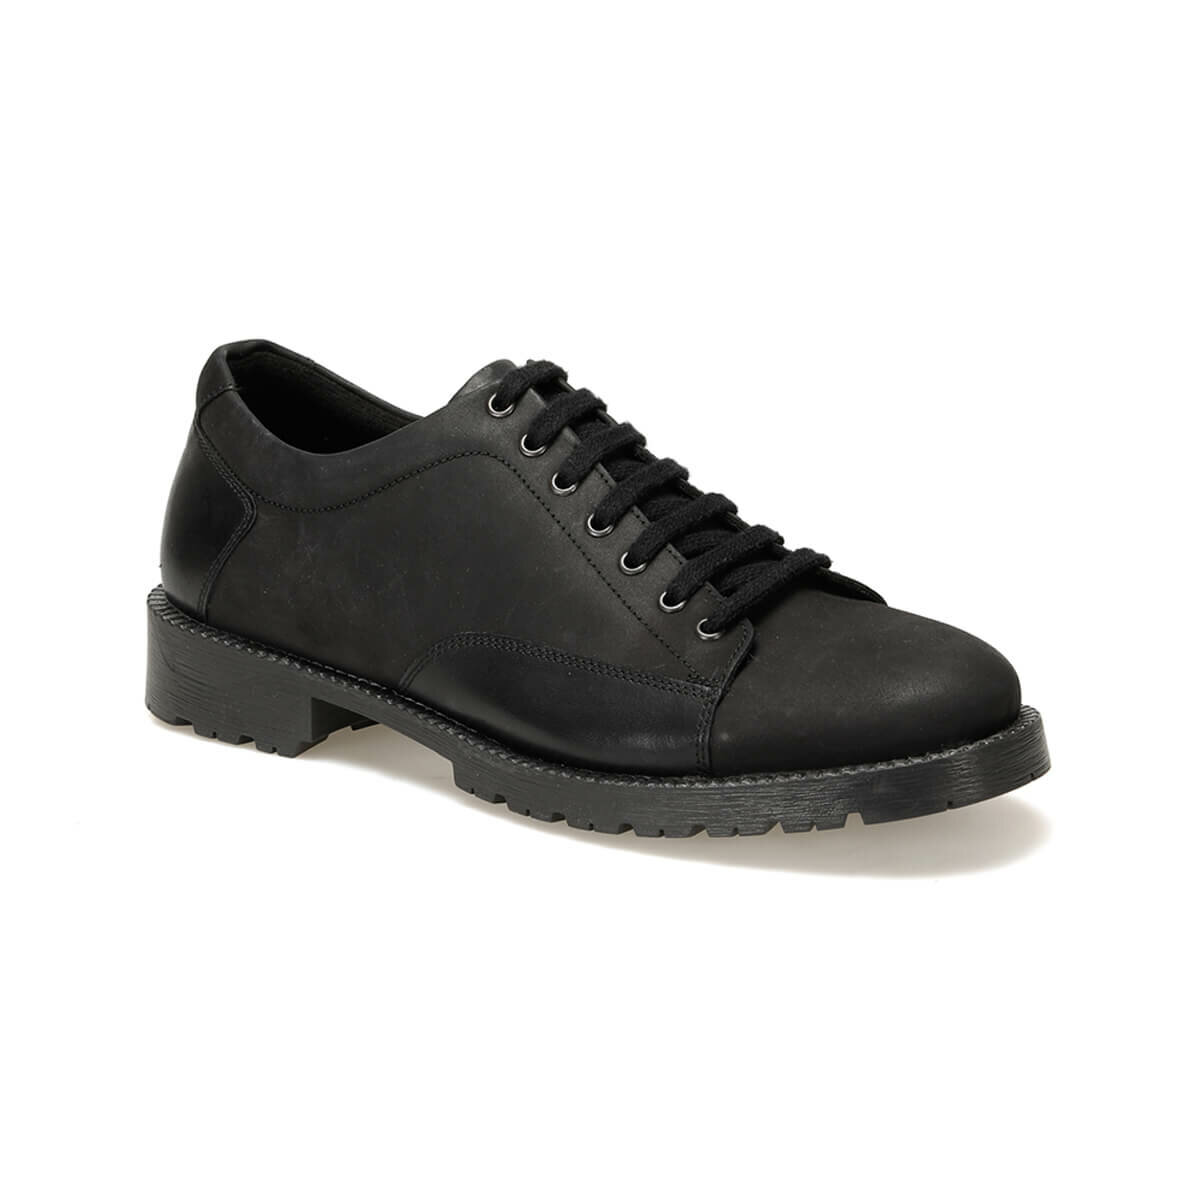 FLO 912 C 19 Black Male Shoes Forester